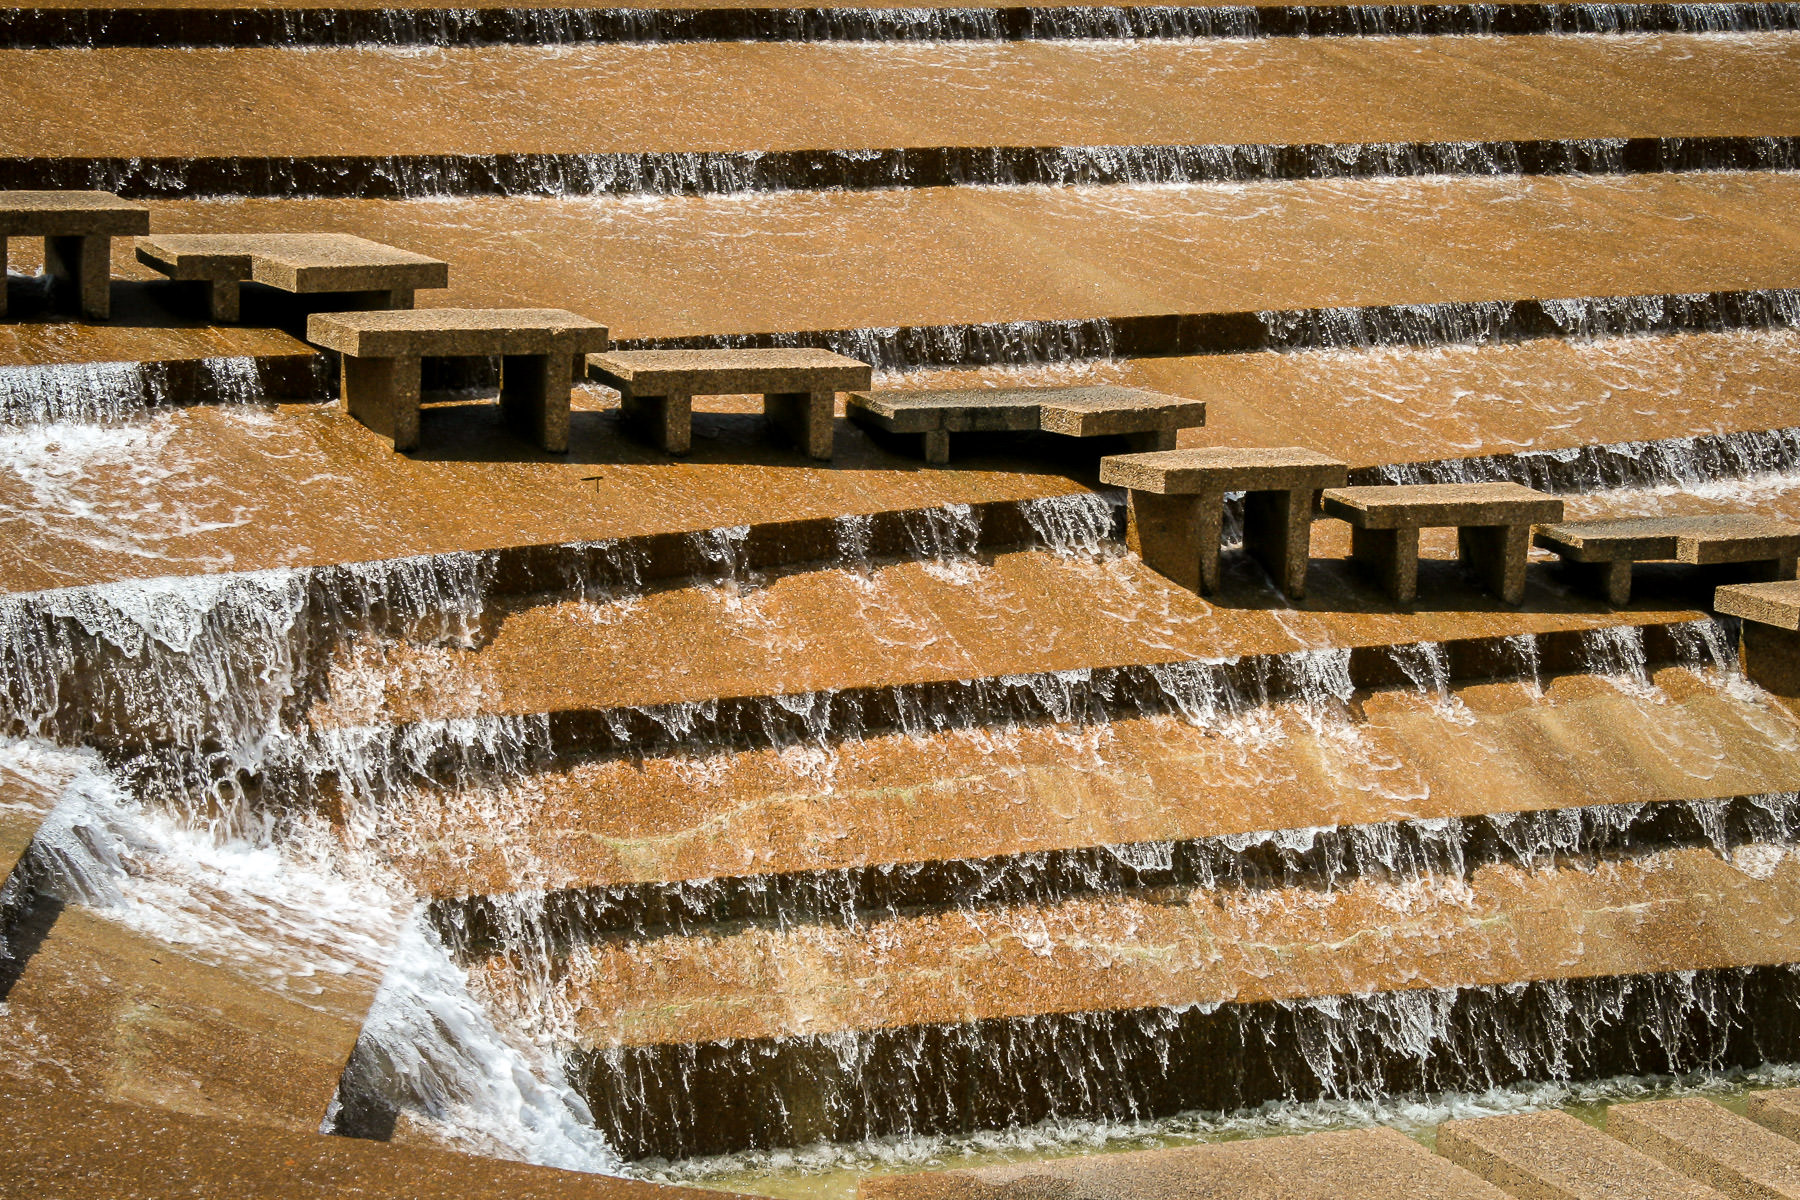 Steps at the Philip Johnson-designed Fort Worth Water Gardens.